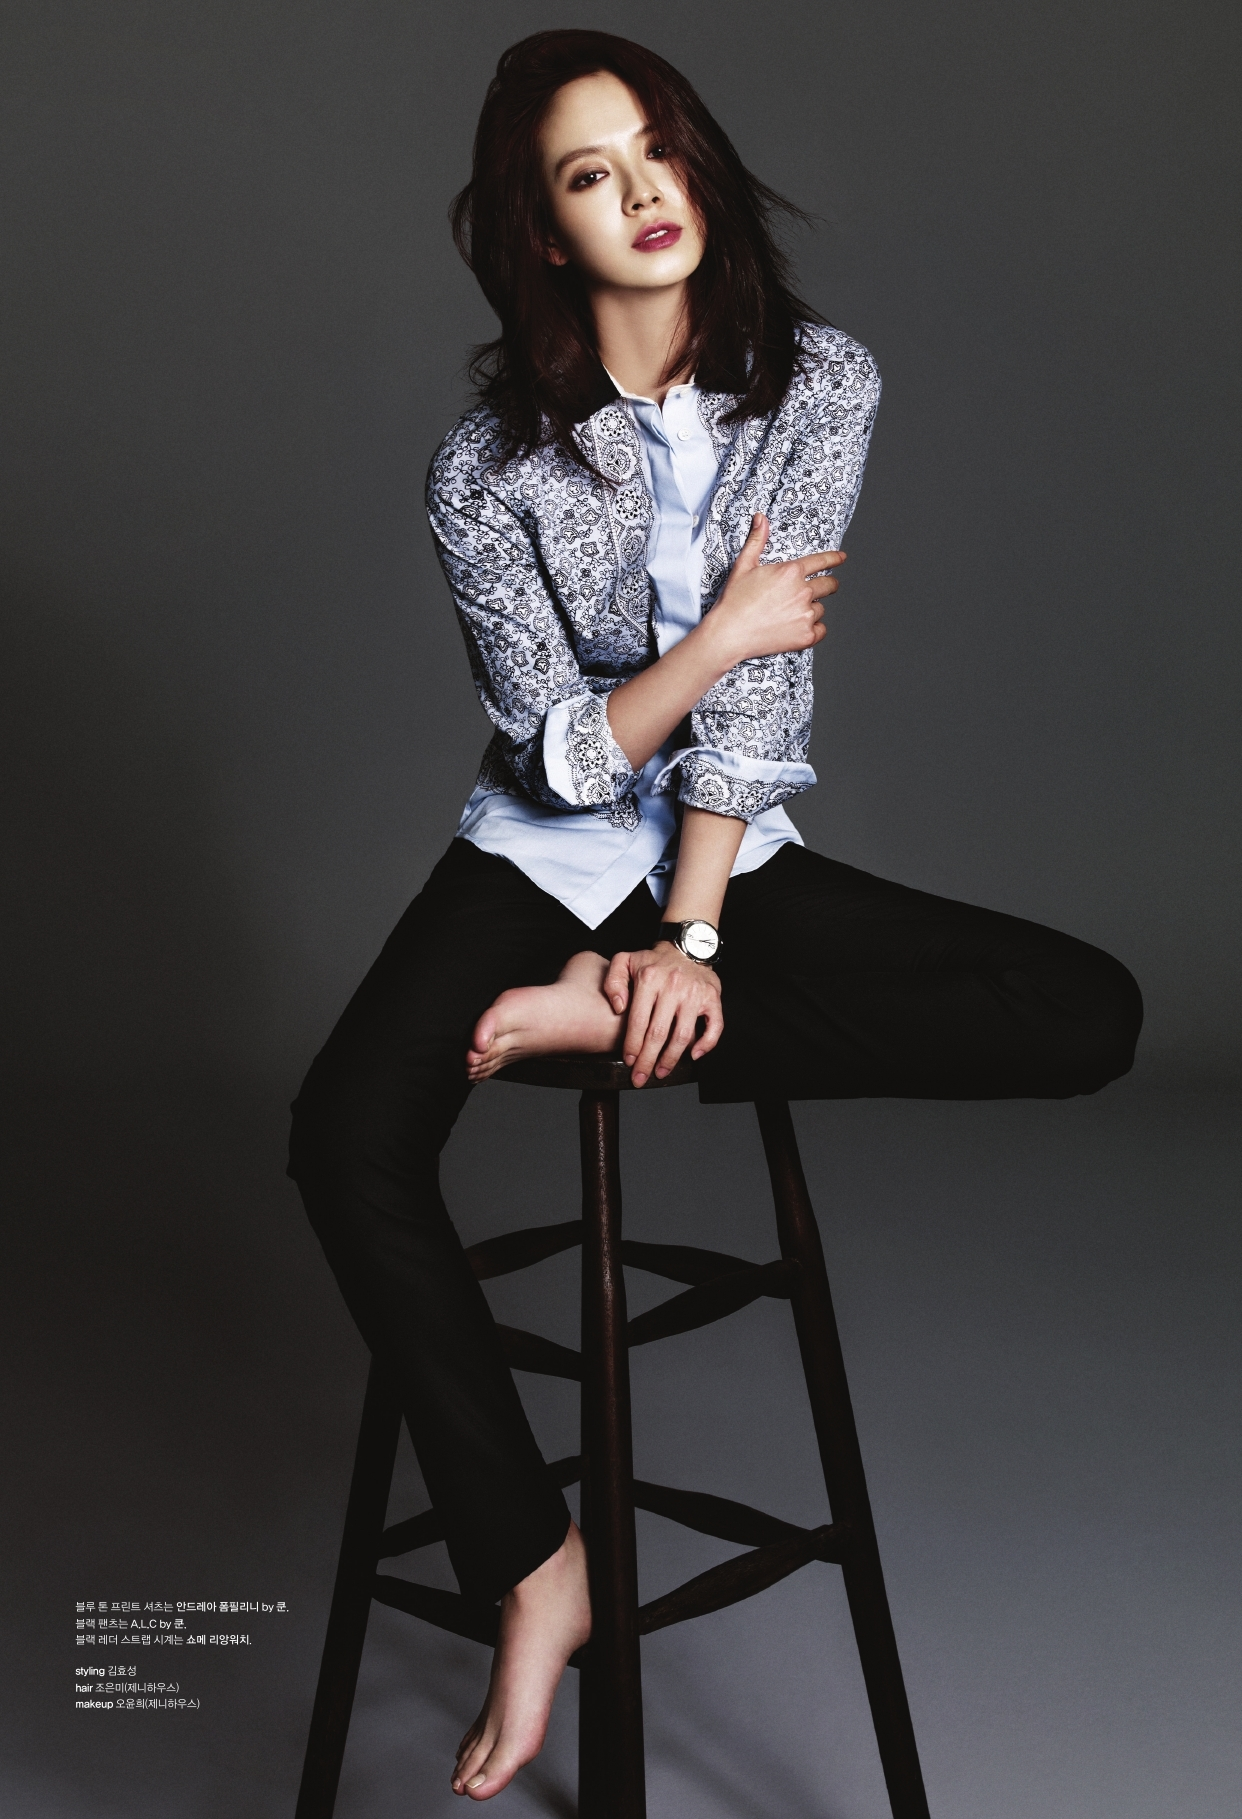 Image result for song ji hyo